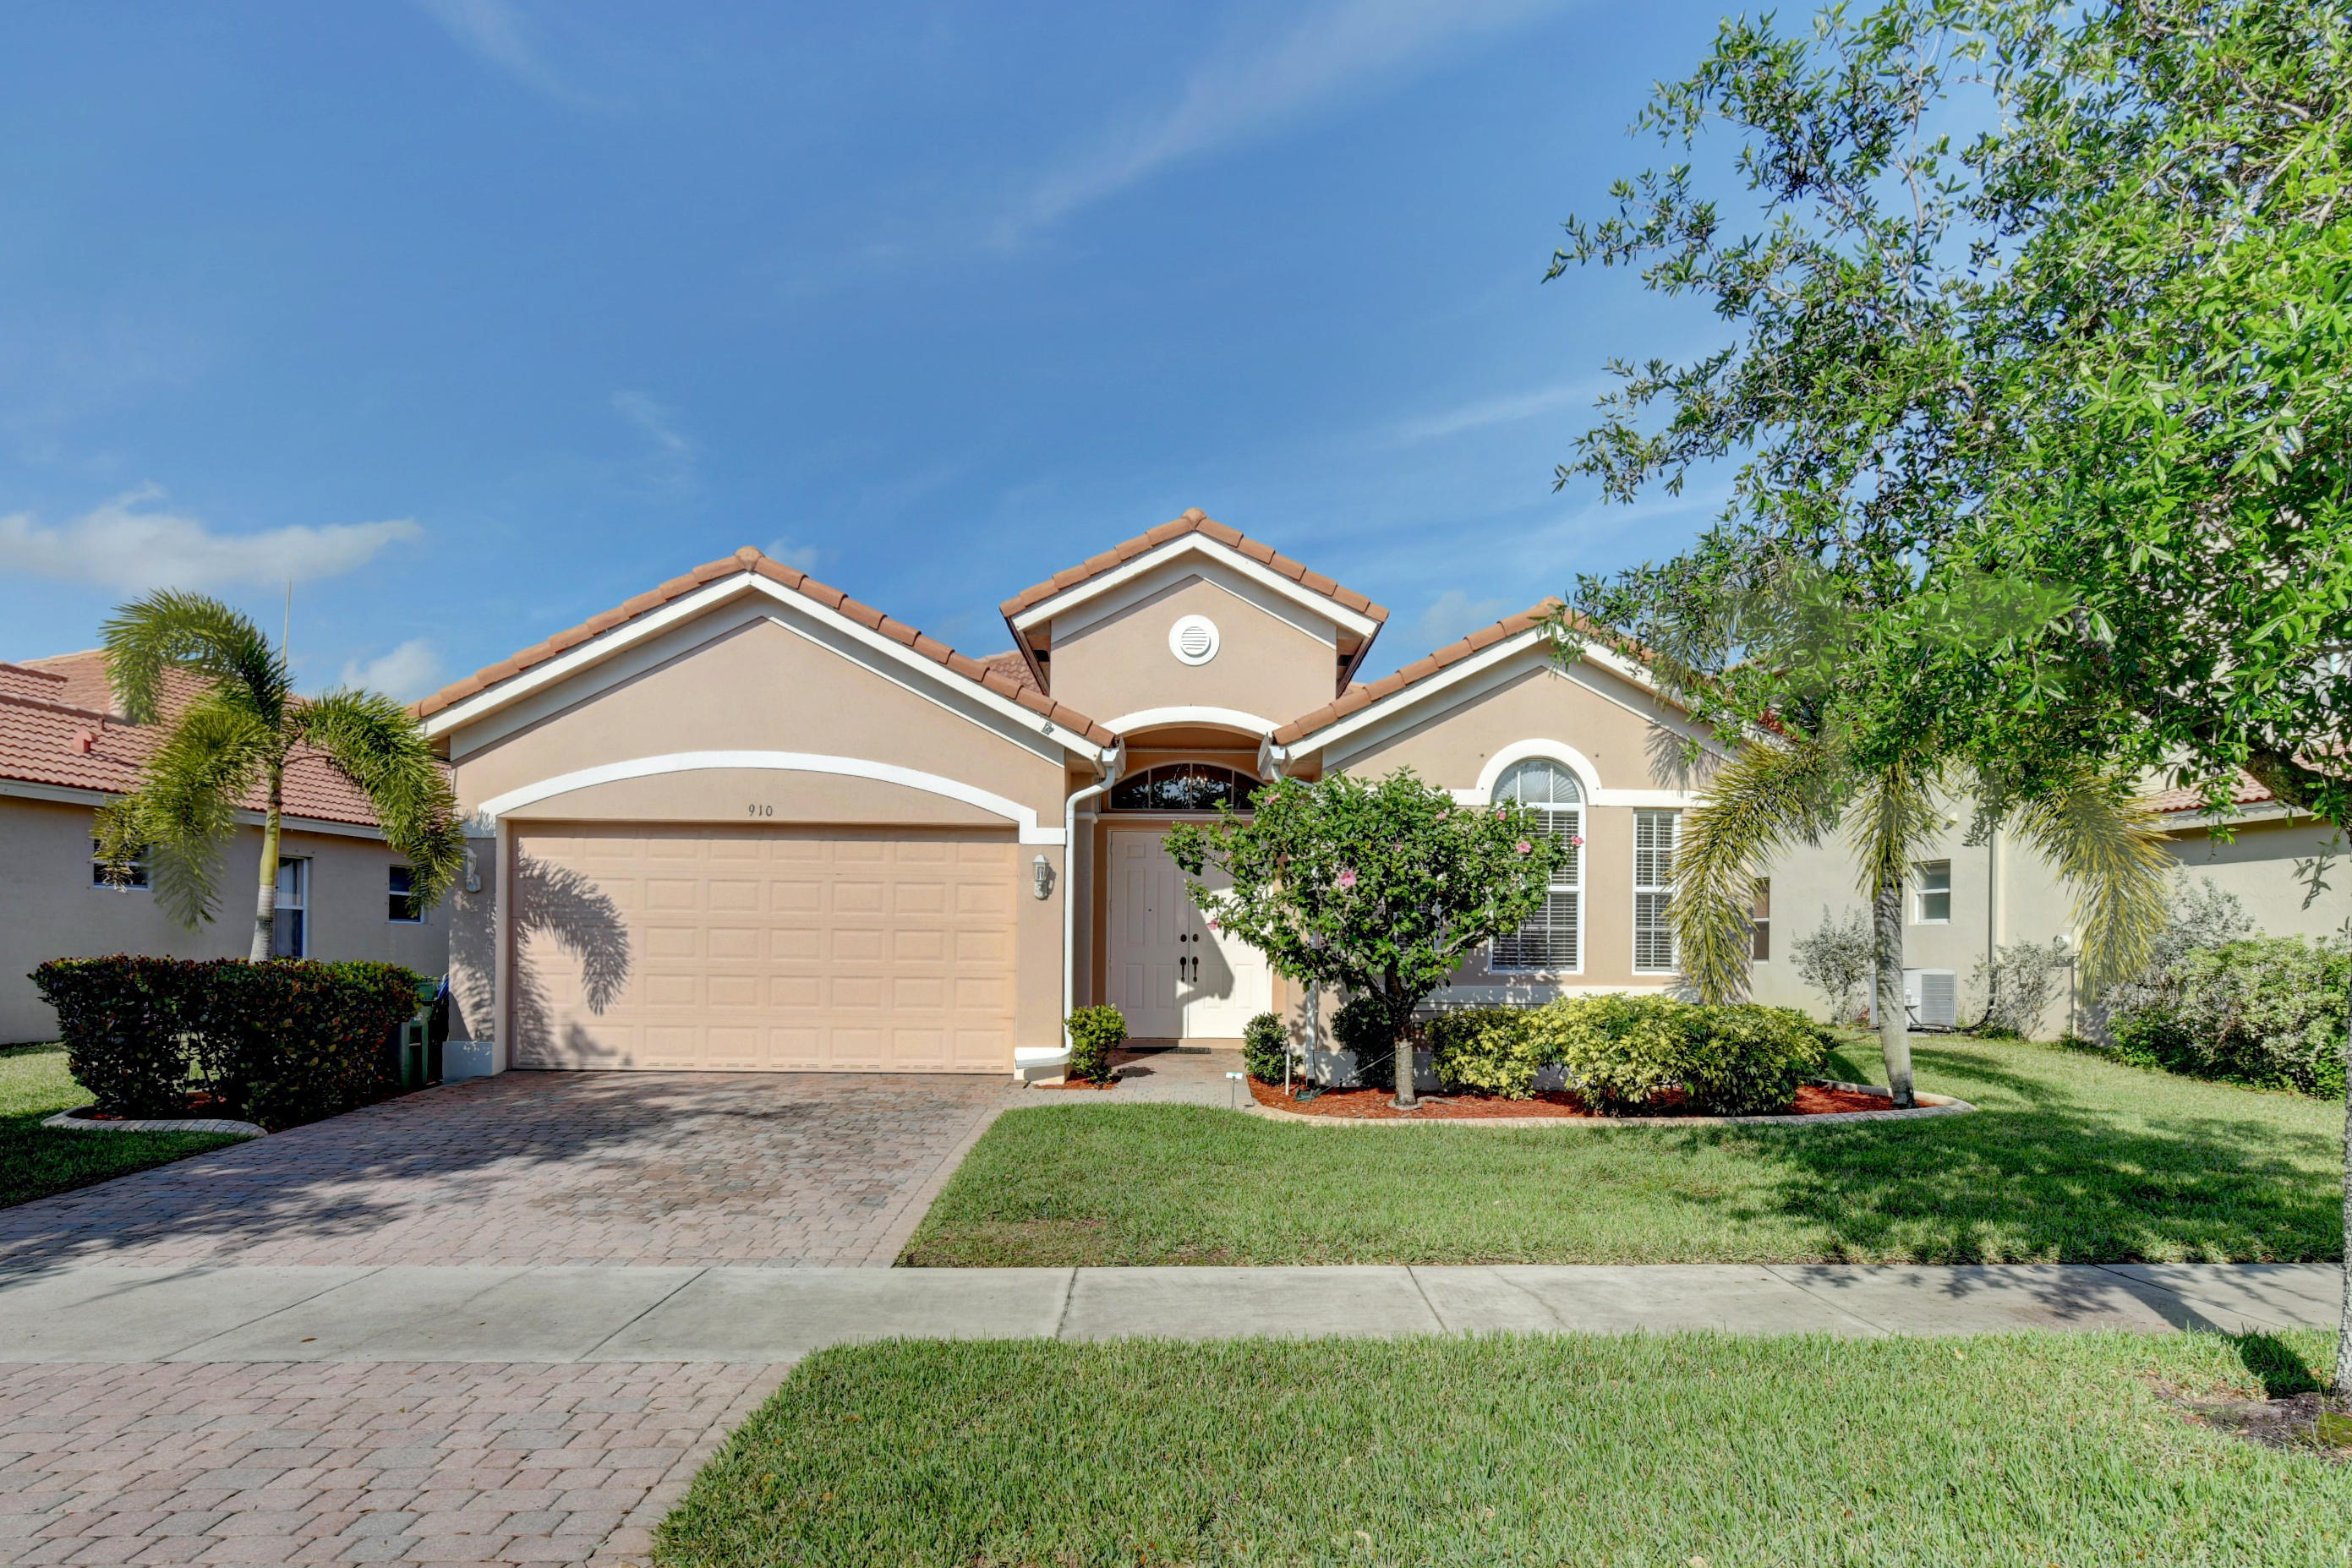 910 NW Demedici Road, Port Saint Lucie, Florida